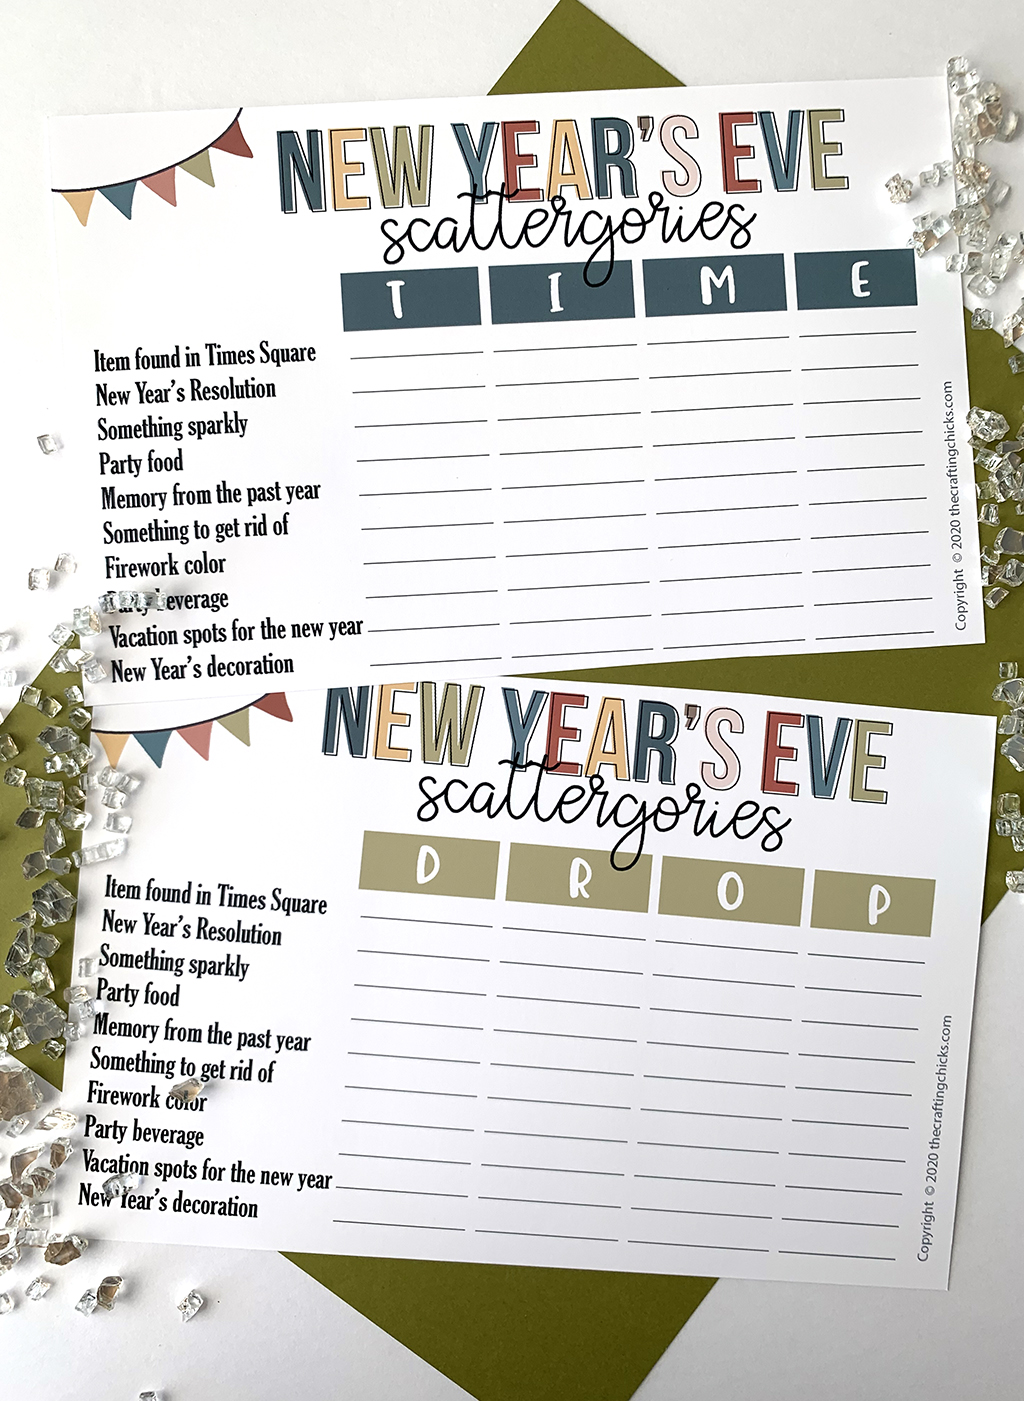 New Year's Eve Scattergories